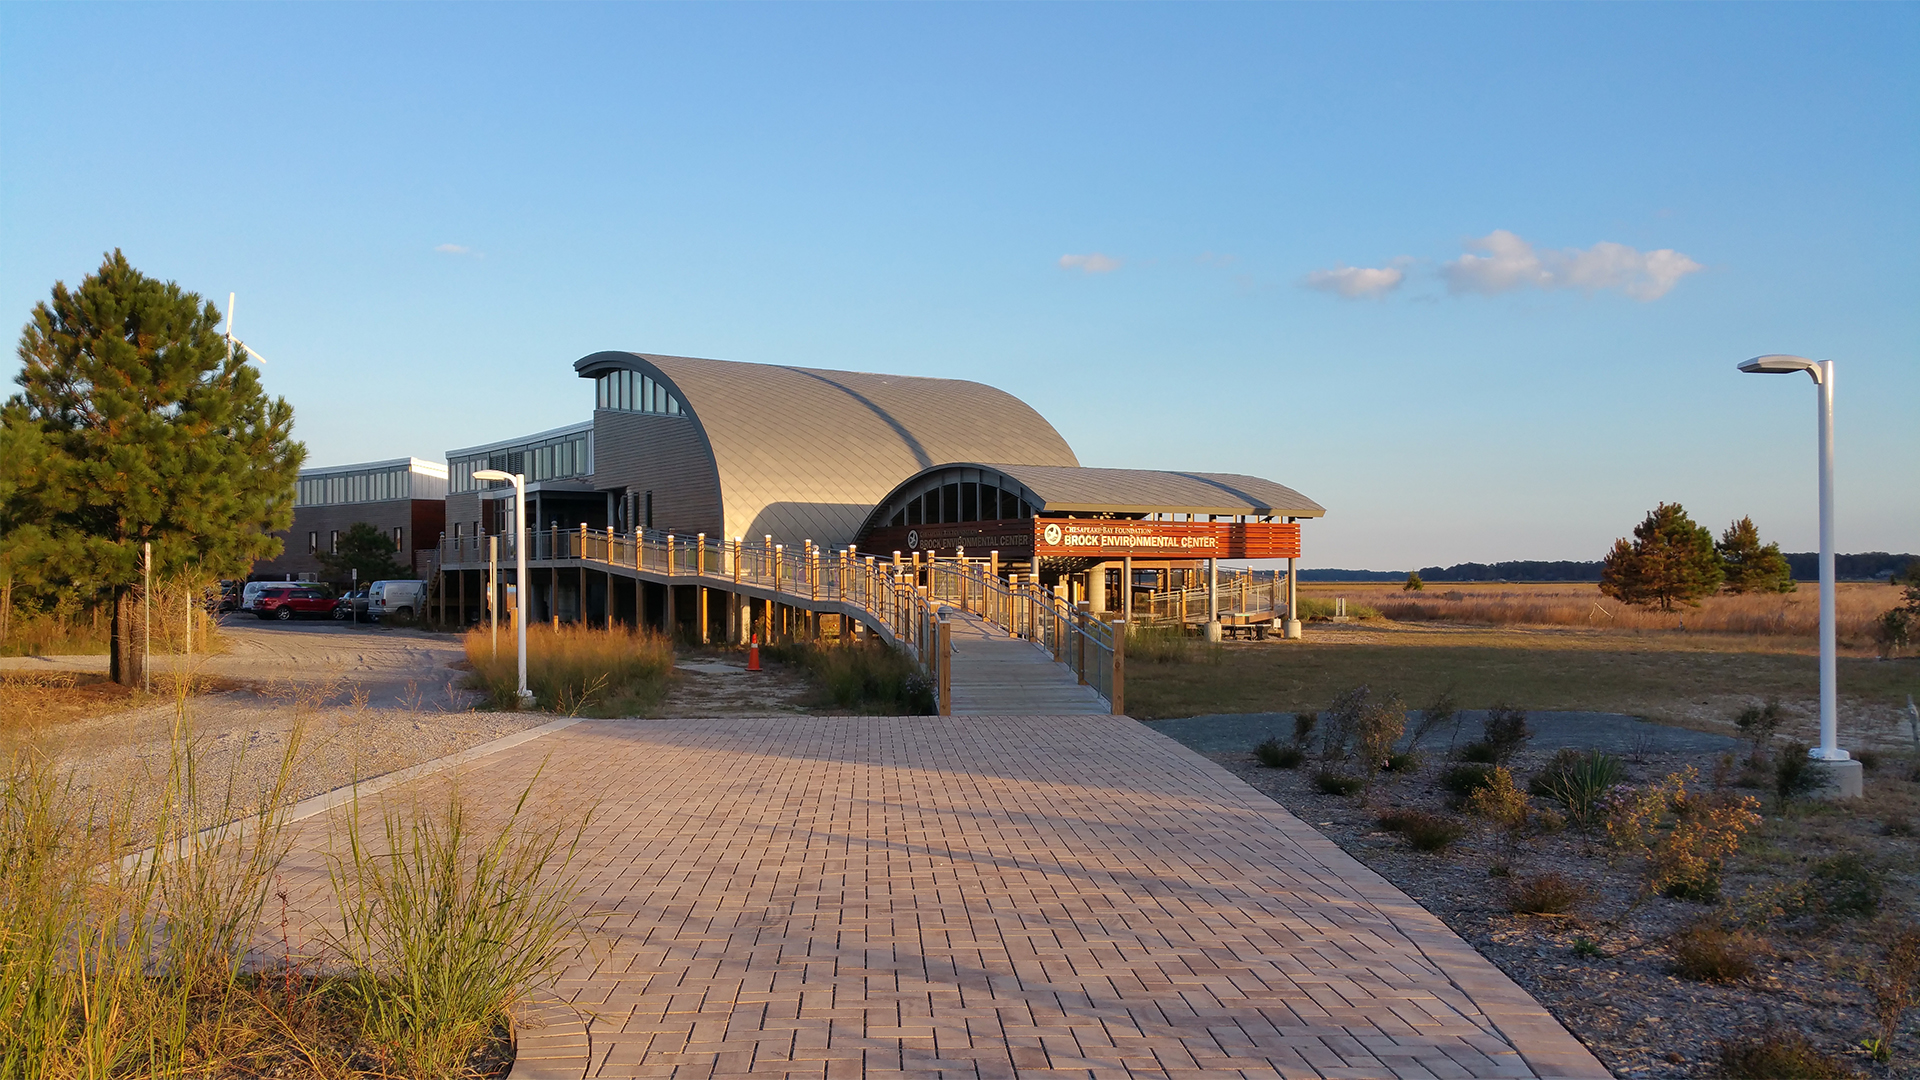 Chesapeake Bay Foundation's Brock Environmental Center